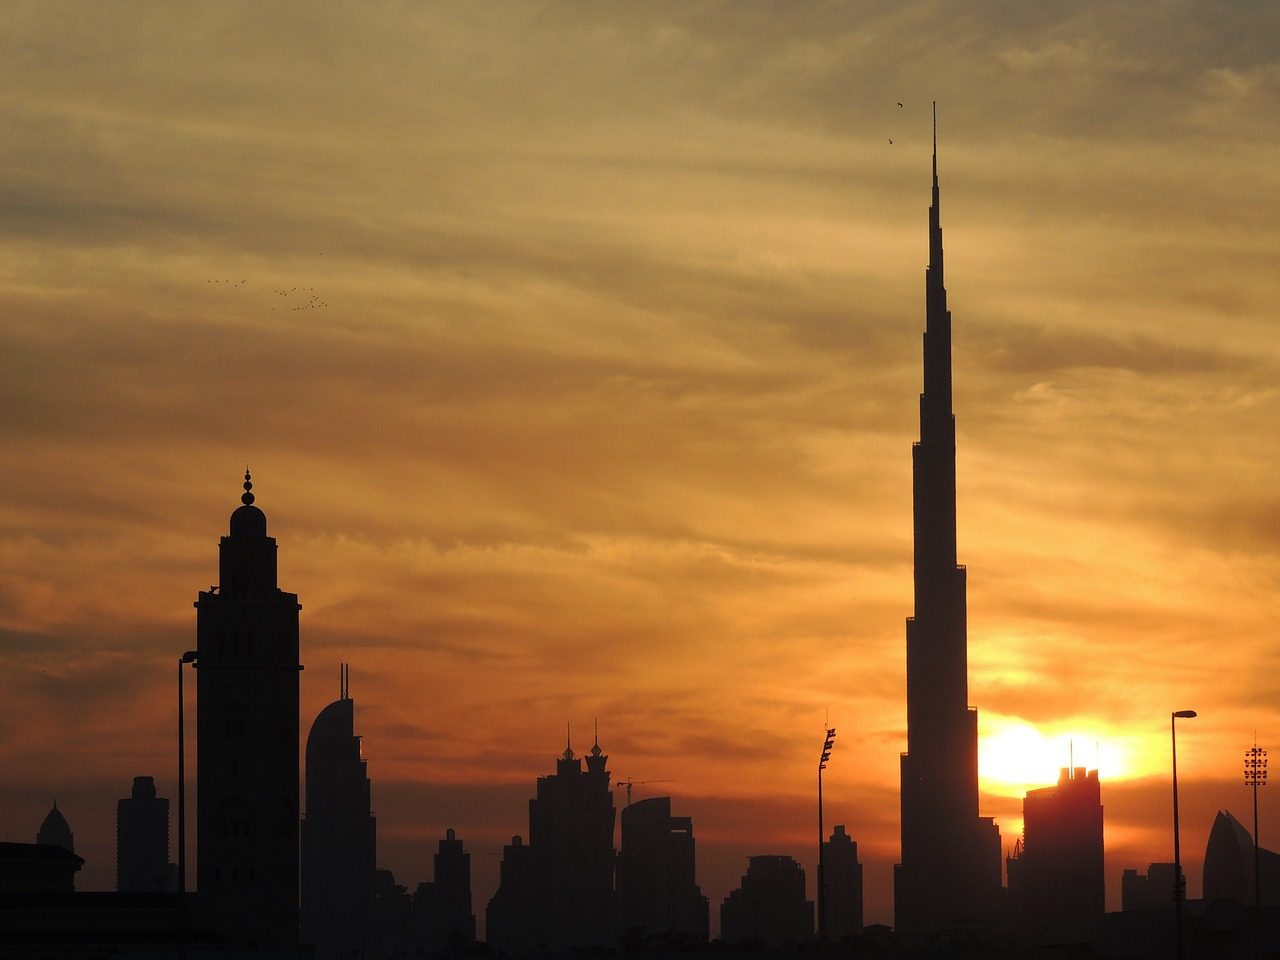 A Look at the 6 Tallest Buildings in the Middle East